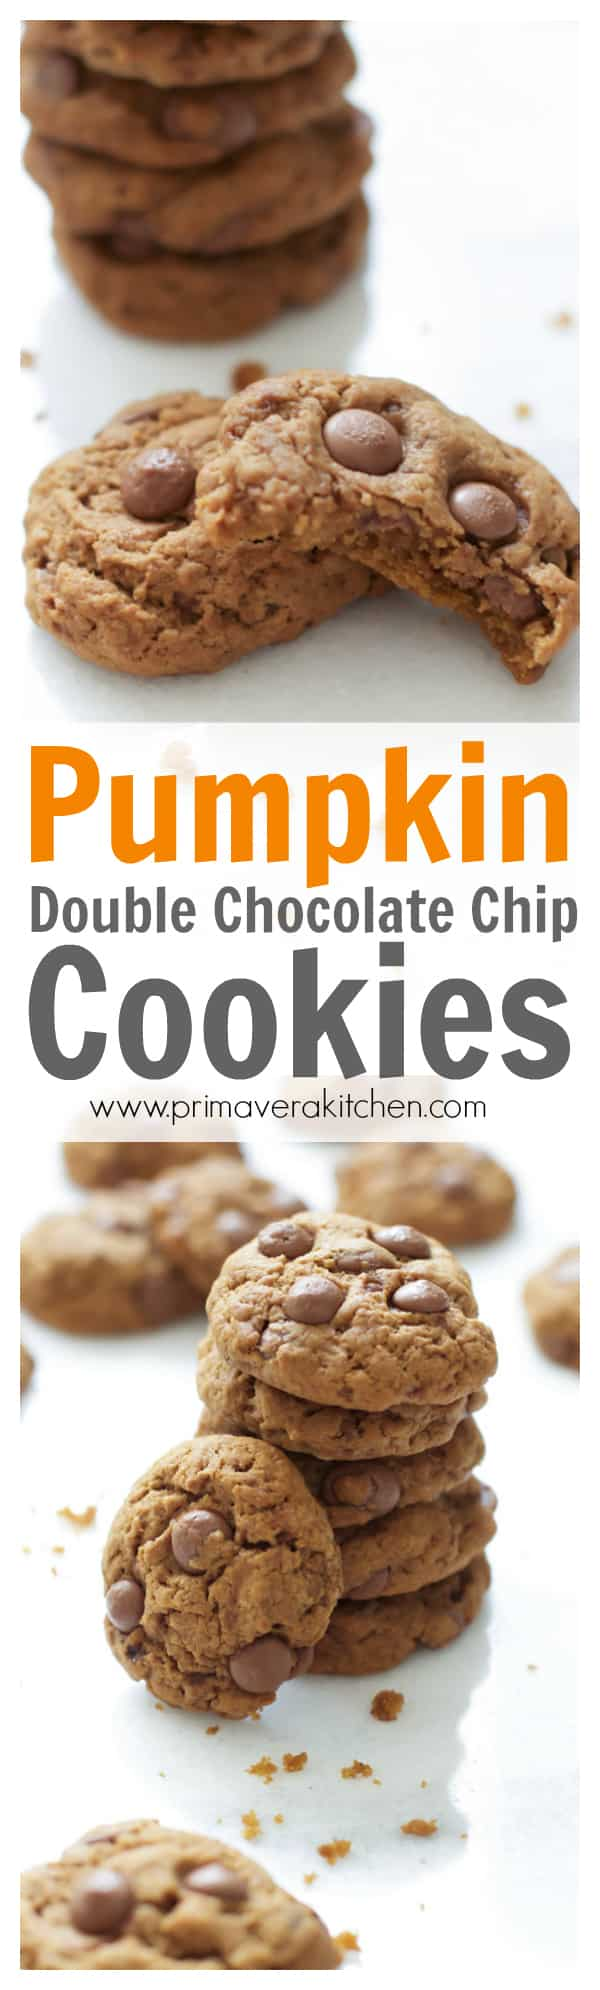 Pumpkin Double Chocolate Chip Cookies - An easy Pumpkin Double Chocolate Chip Cookies recipe that quick to make, soft, chewy and loaded with cocoa powder, chocolate chips, pumpkin puree and warm spices!! It's a must make cookie recipe for fall!